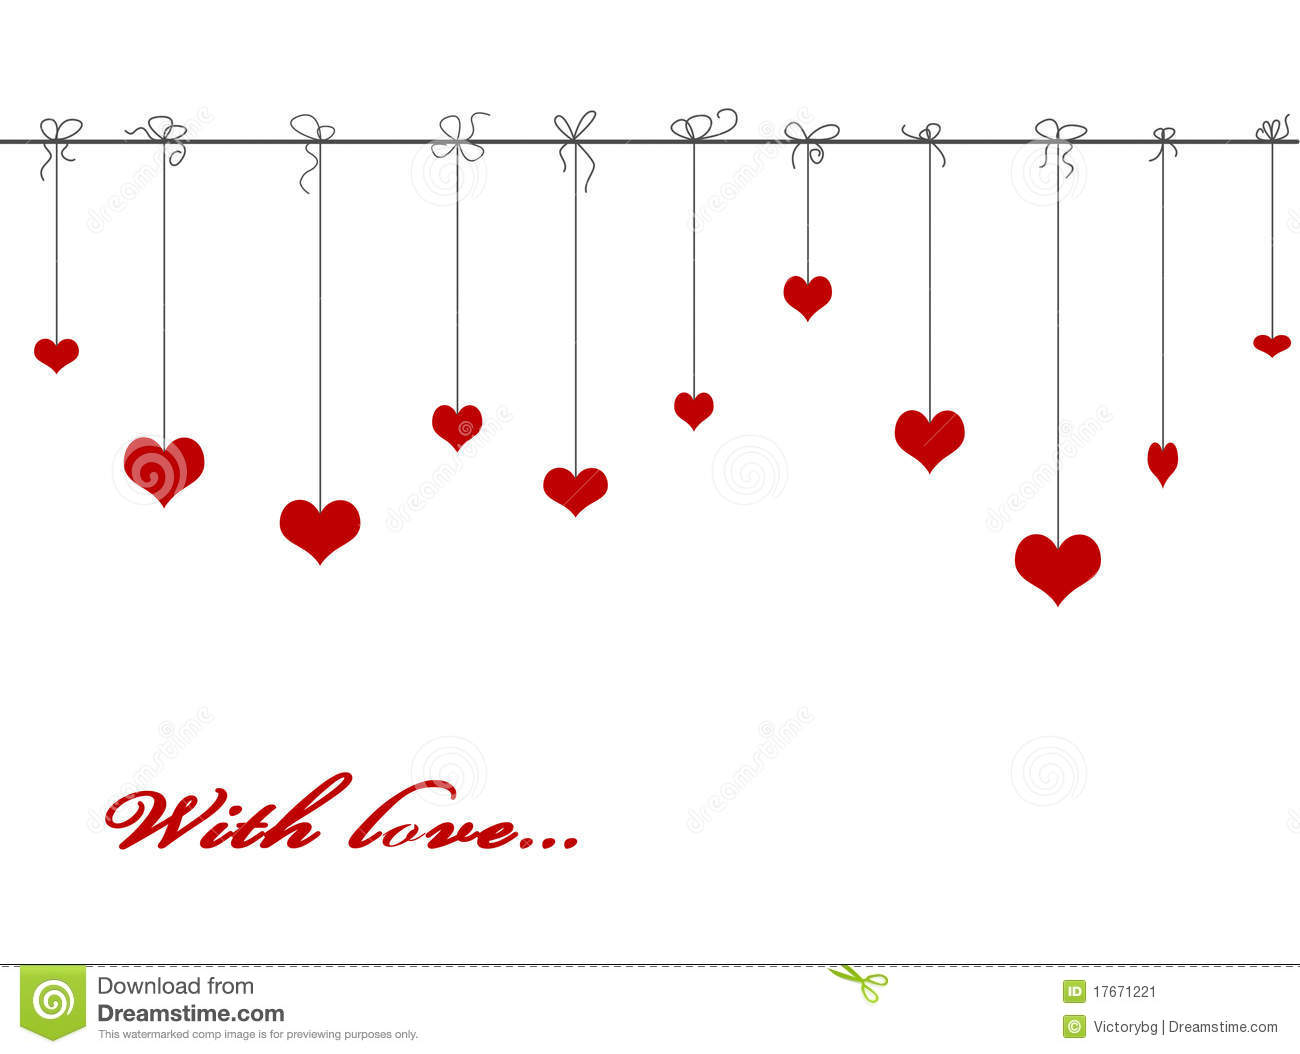 Pics photos heart black wallpaper romantic love pictures - Hanging Red Valentine Hearts Stock Image Image 17671221